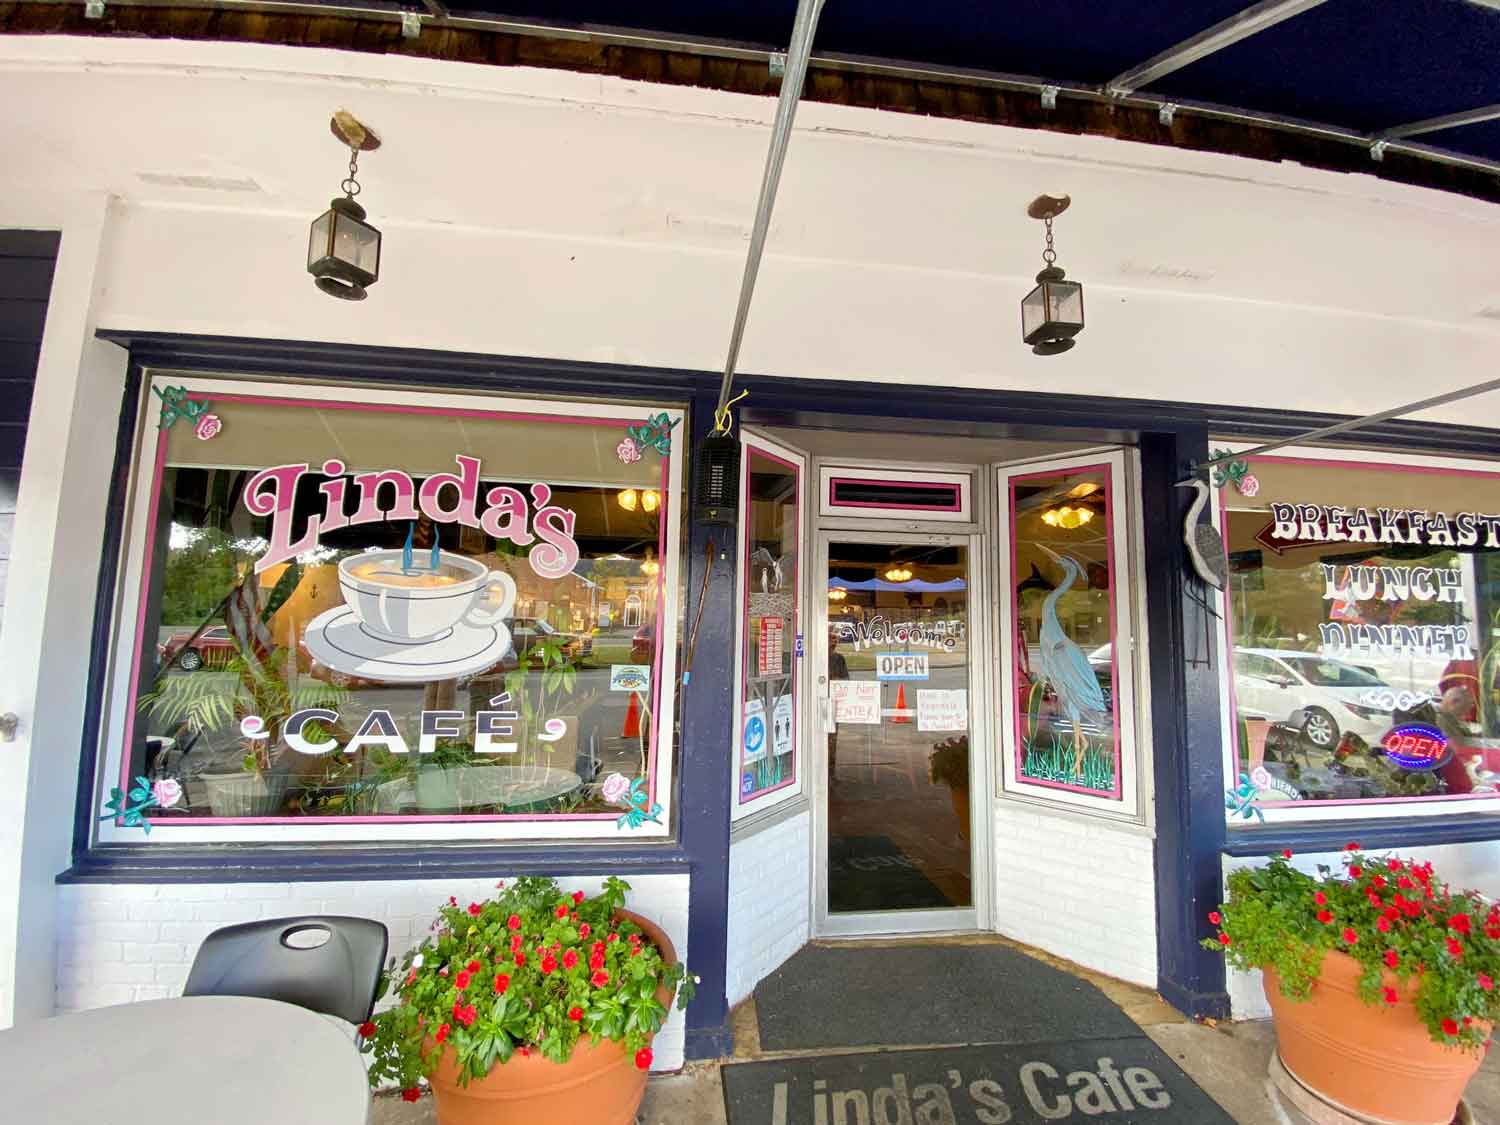 Dining - Linda's Cafe